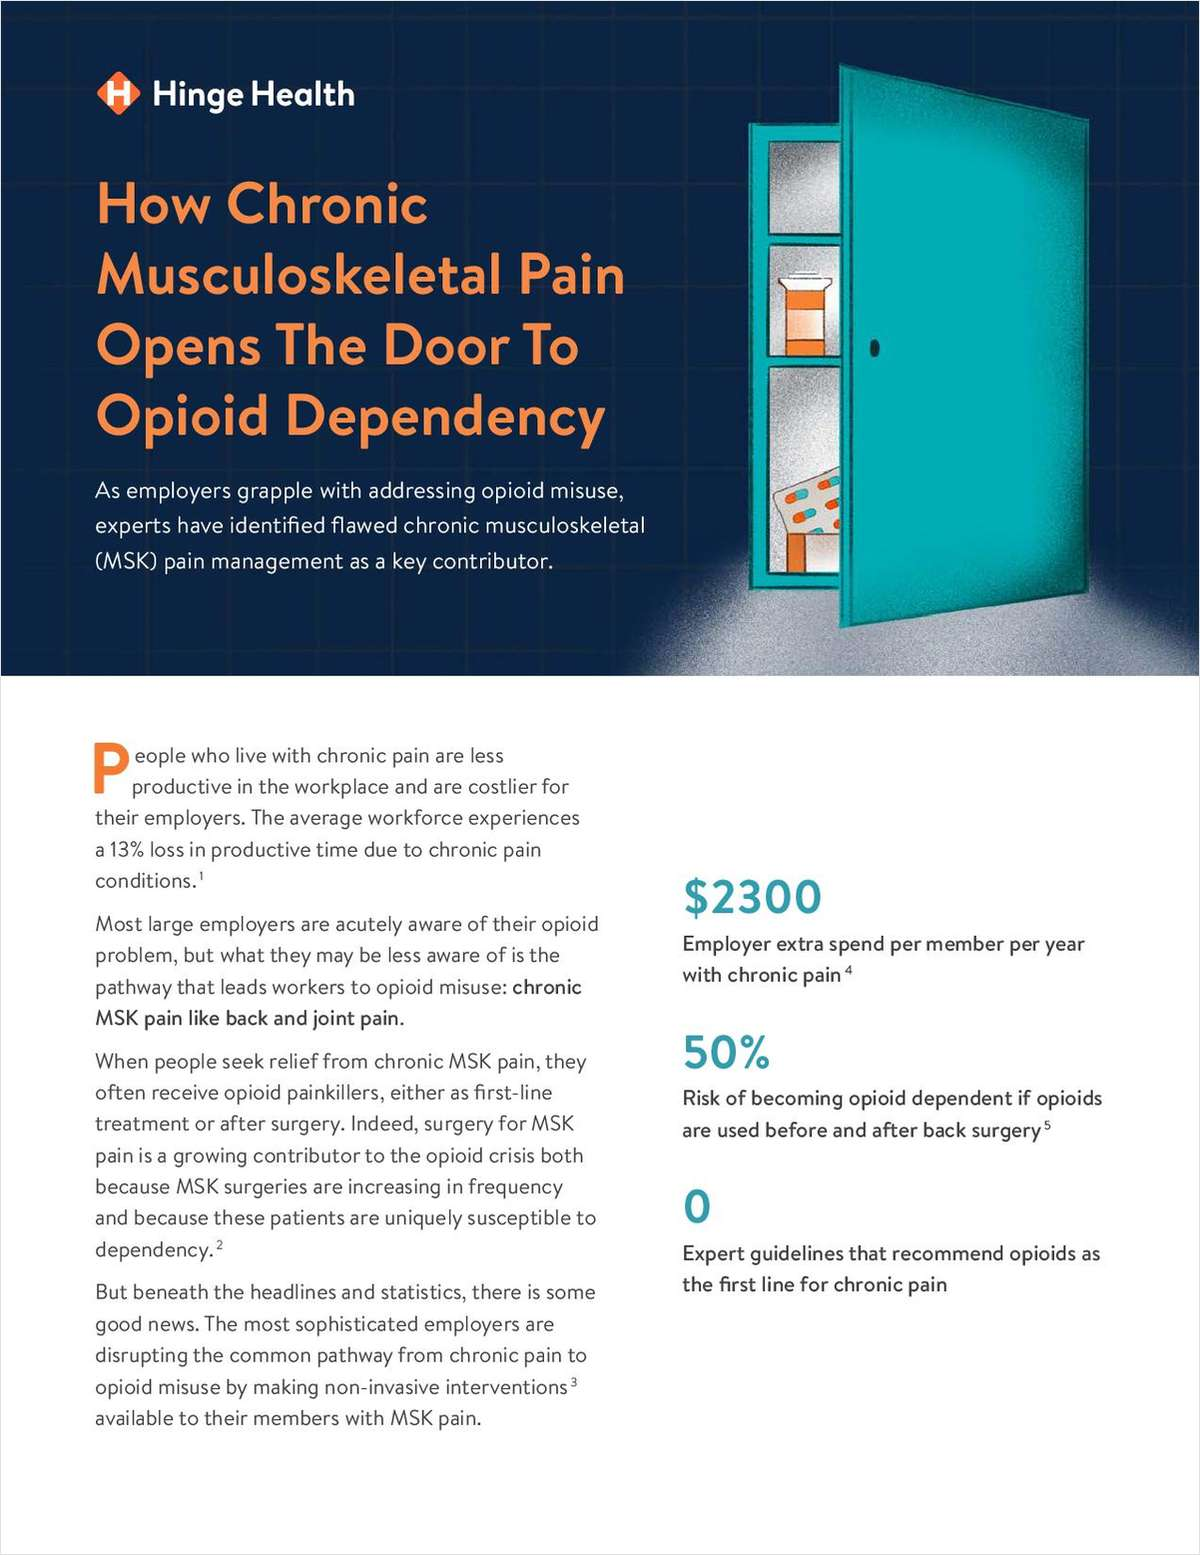 Help Clients Address Chronic Pain & Opioid Misuse Among Employees